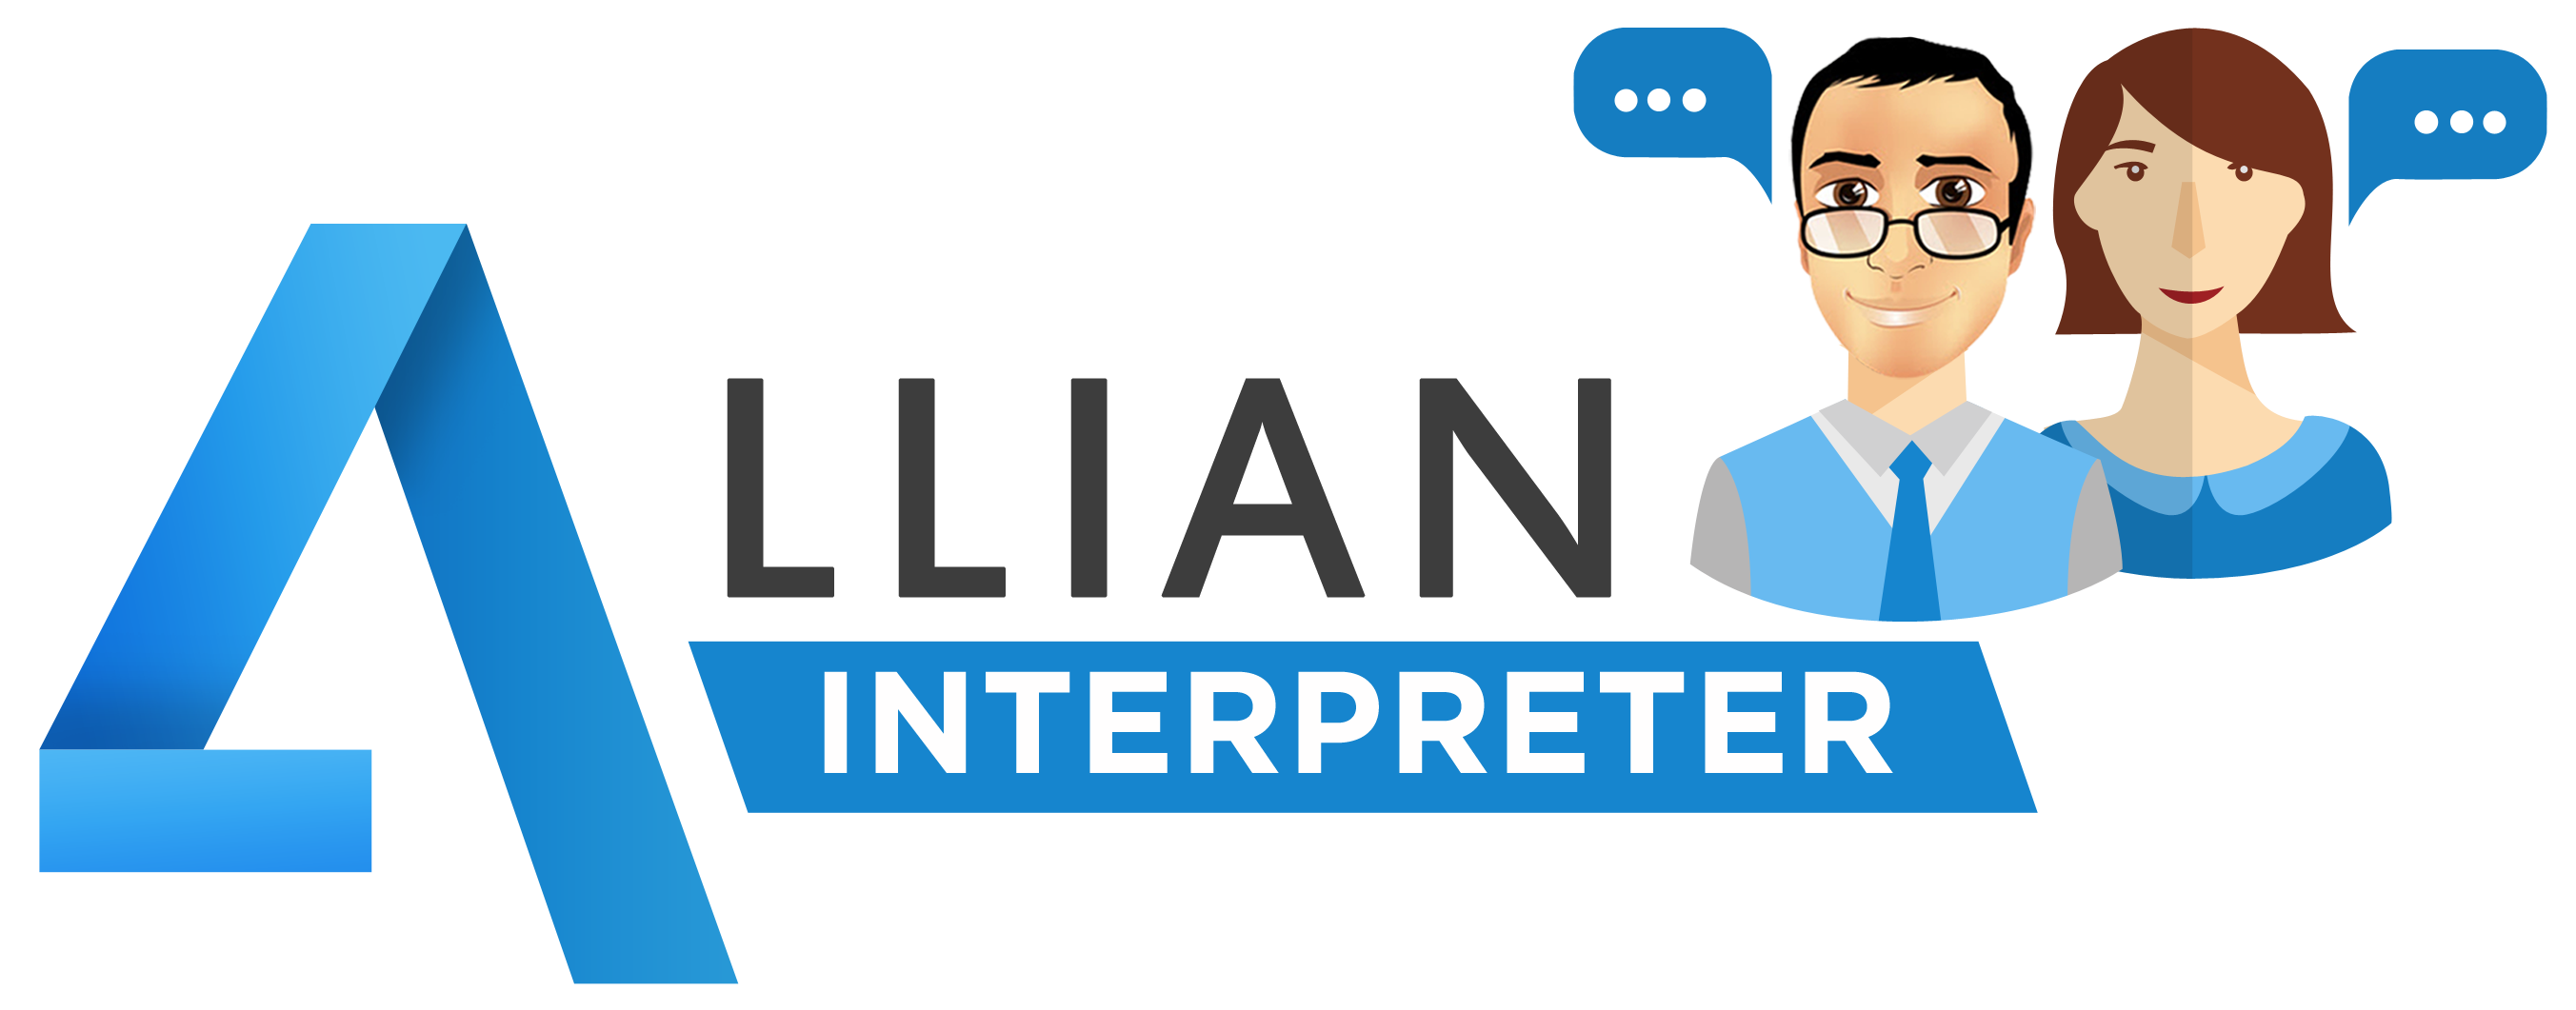 Alliance Business Solutions LLC - Interpreters